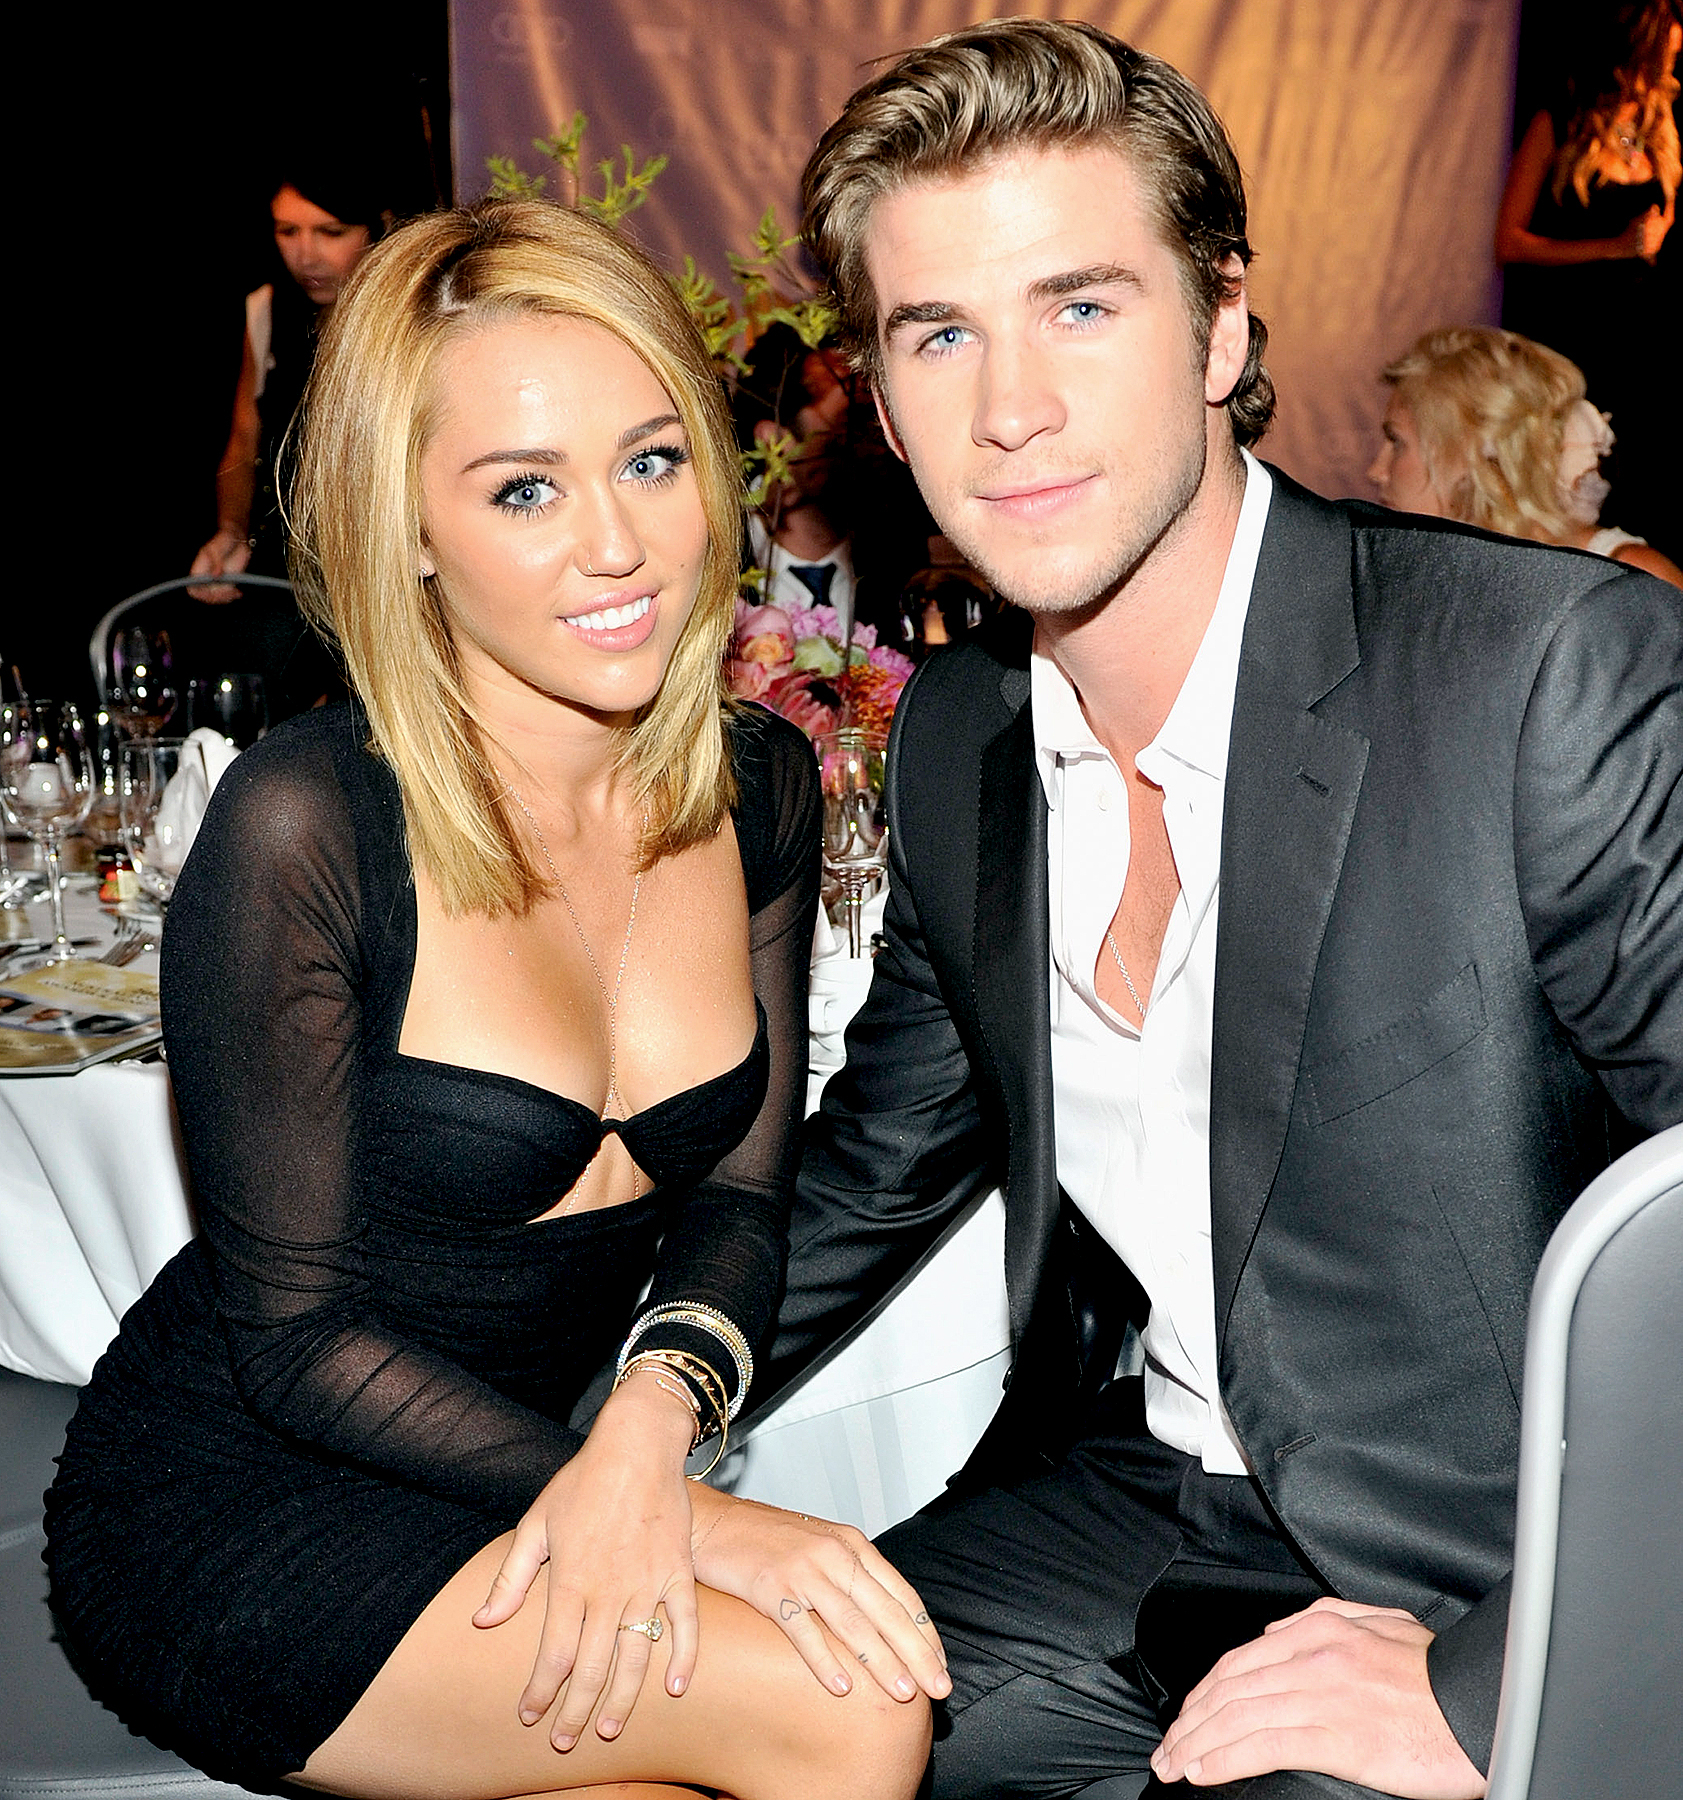 Miley Cyrus and Liam Hemsworth attend Australians In Film Awards & Benefit Dinner at InterContinental Hotel on June 27, 2012 in Century City, California.